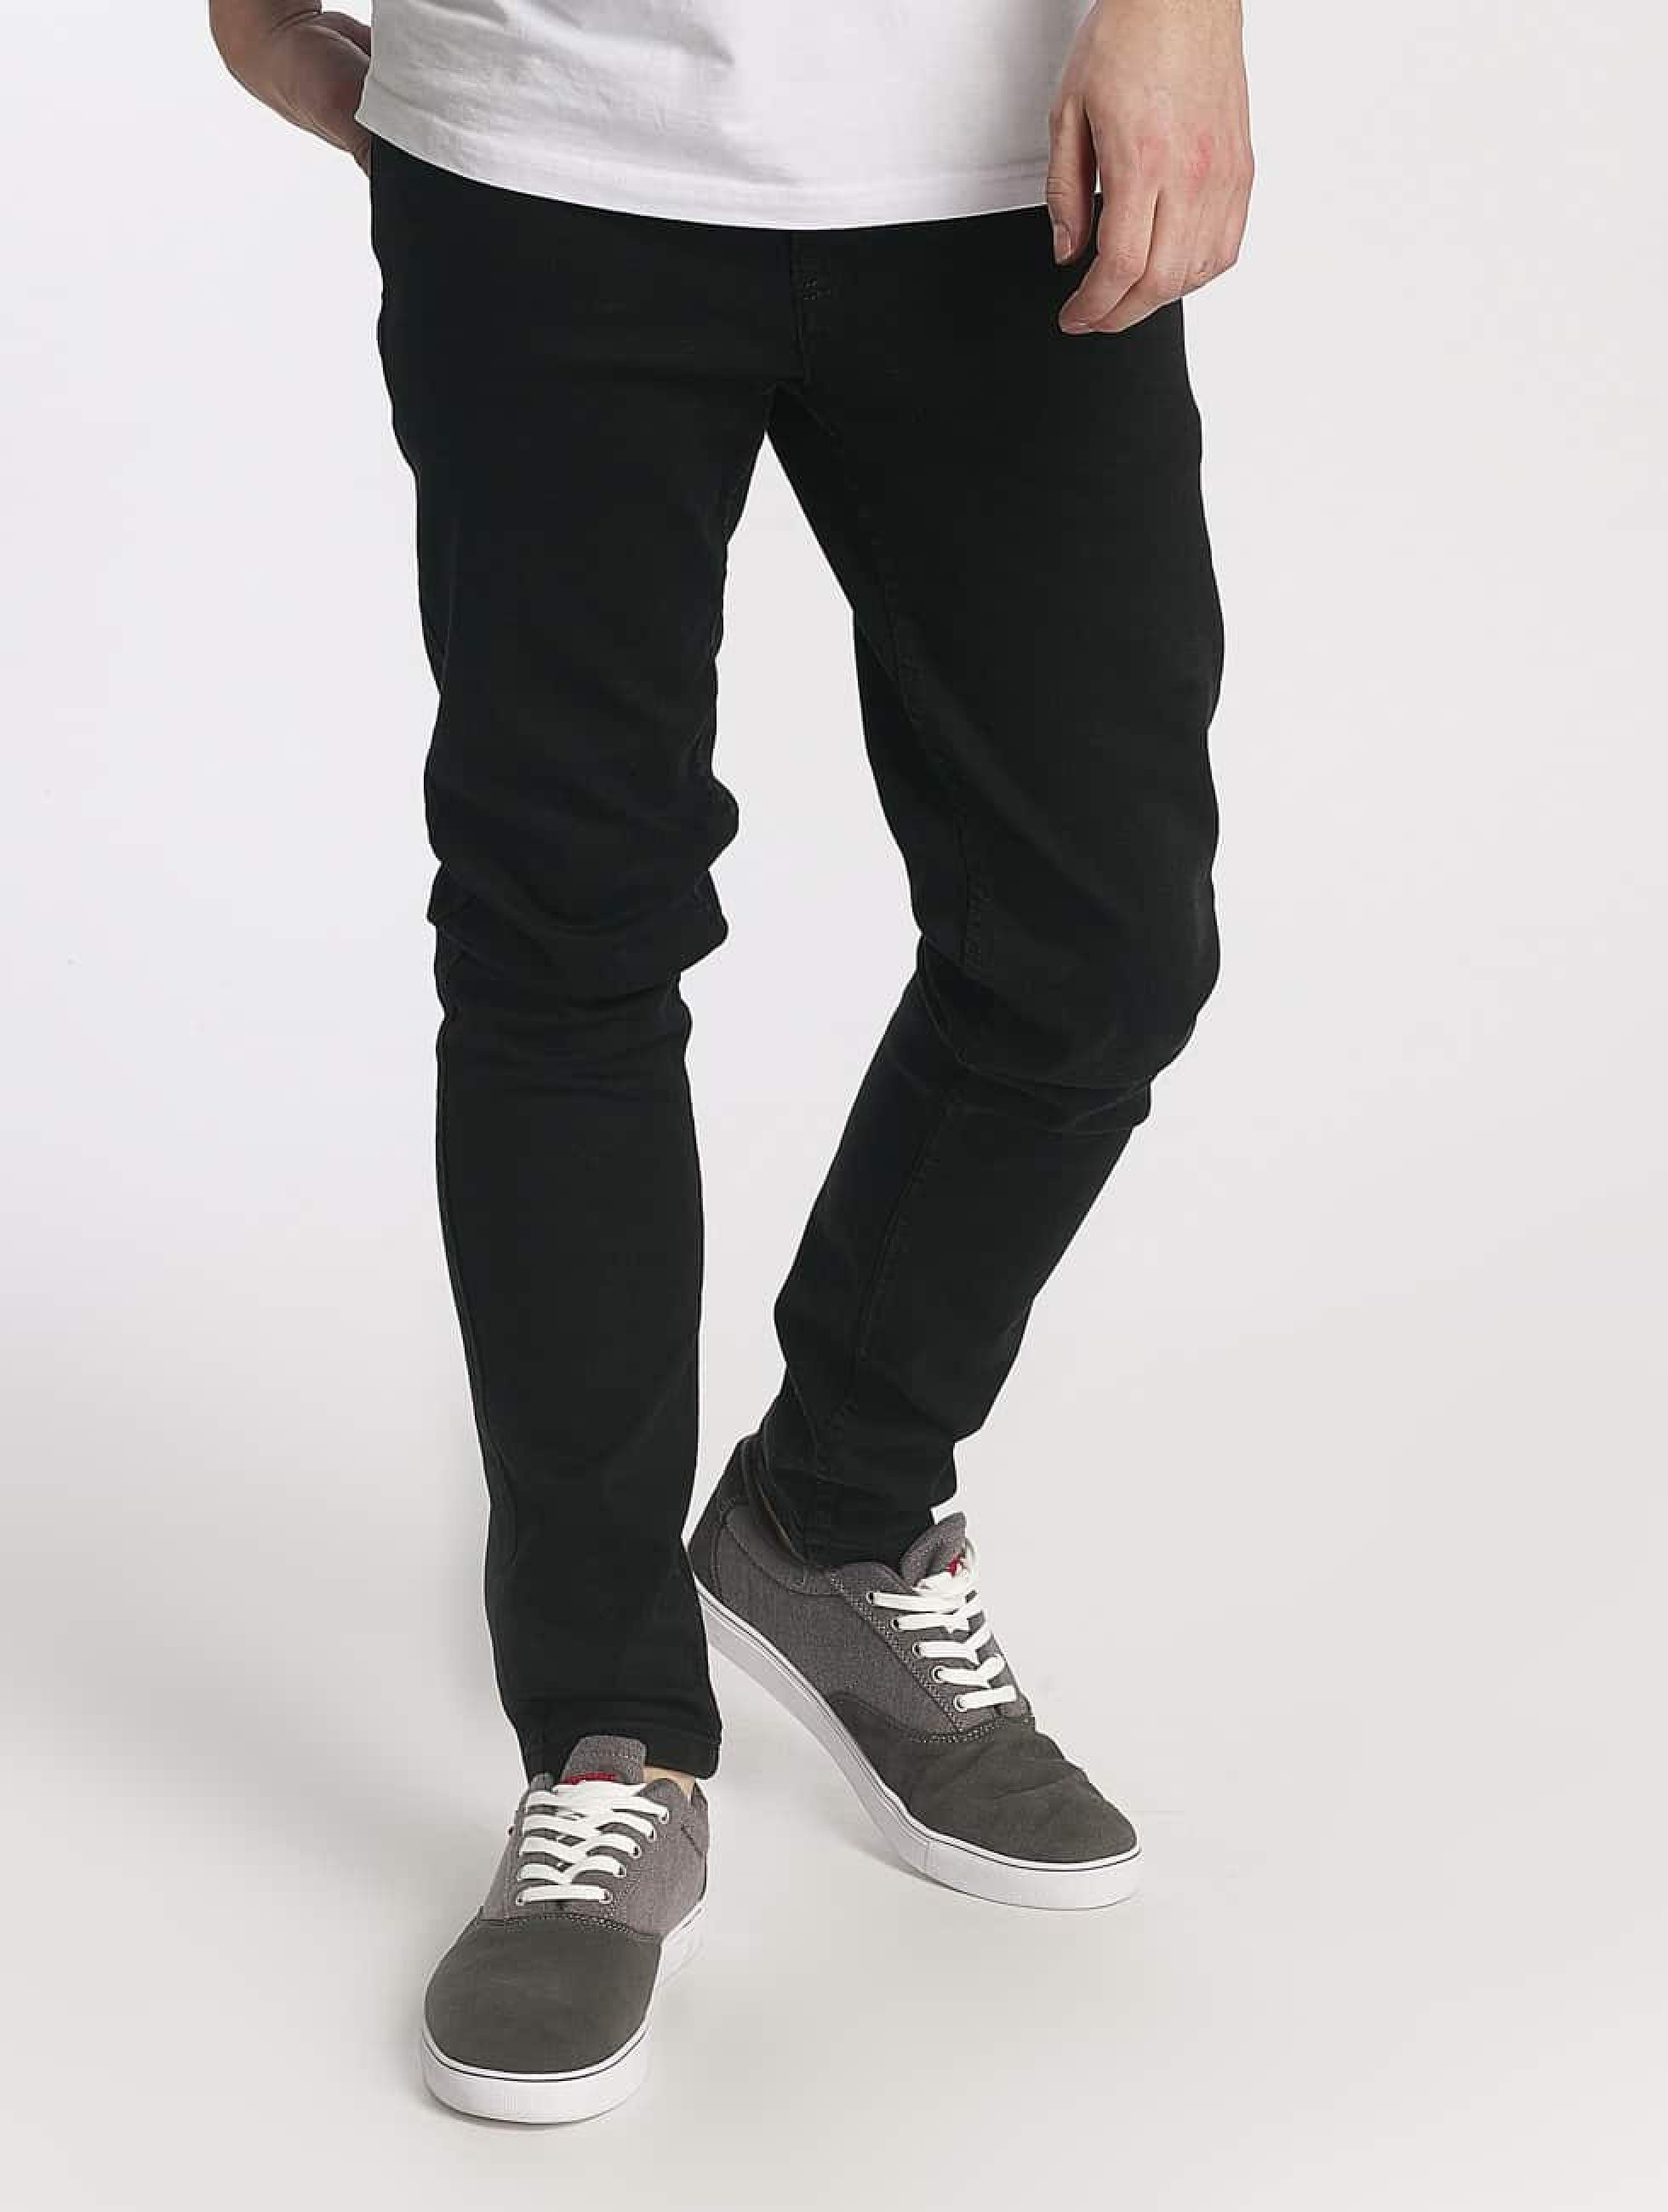 Just Rhyse / Slim Fit Jeans Ensenada in black W 34 L 32